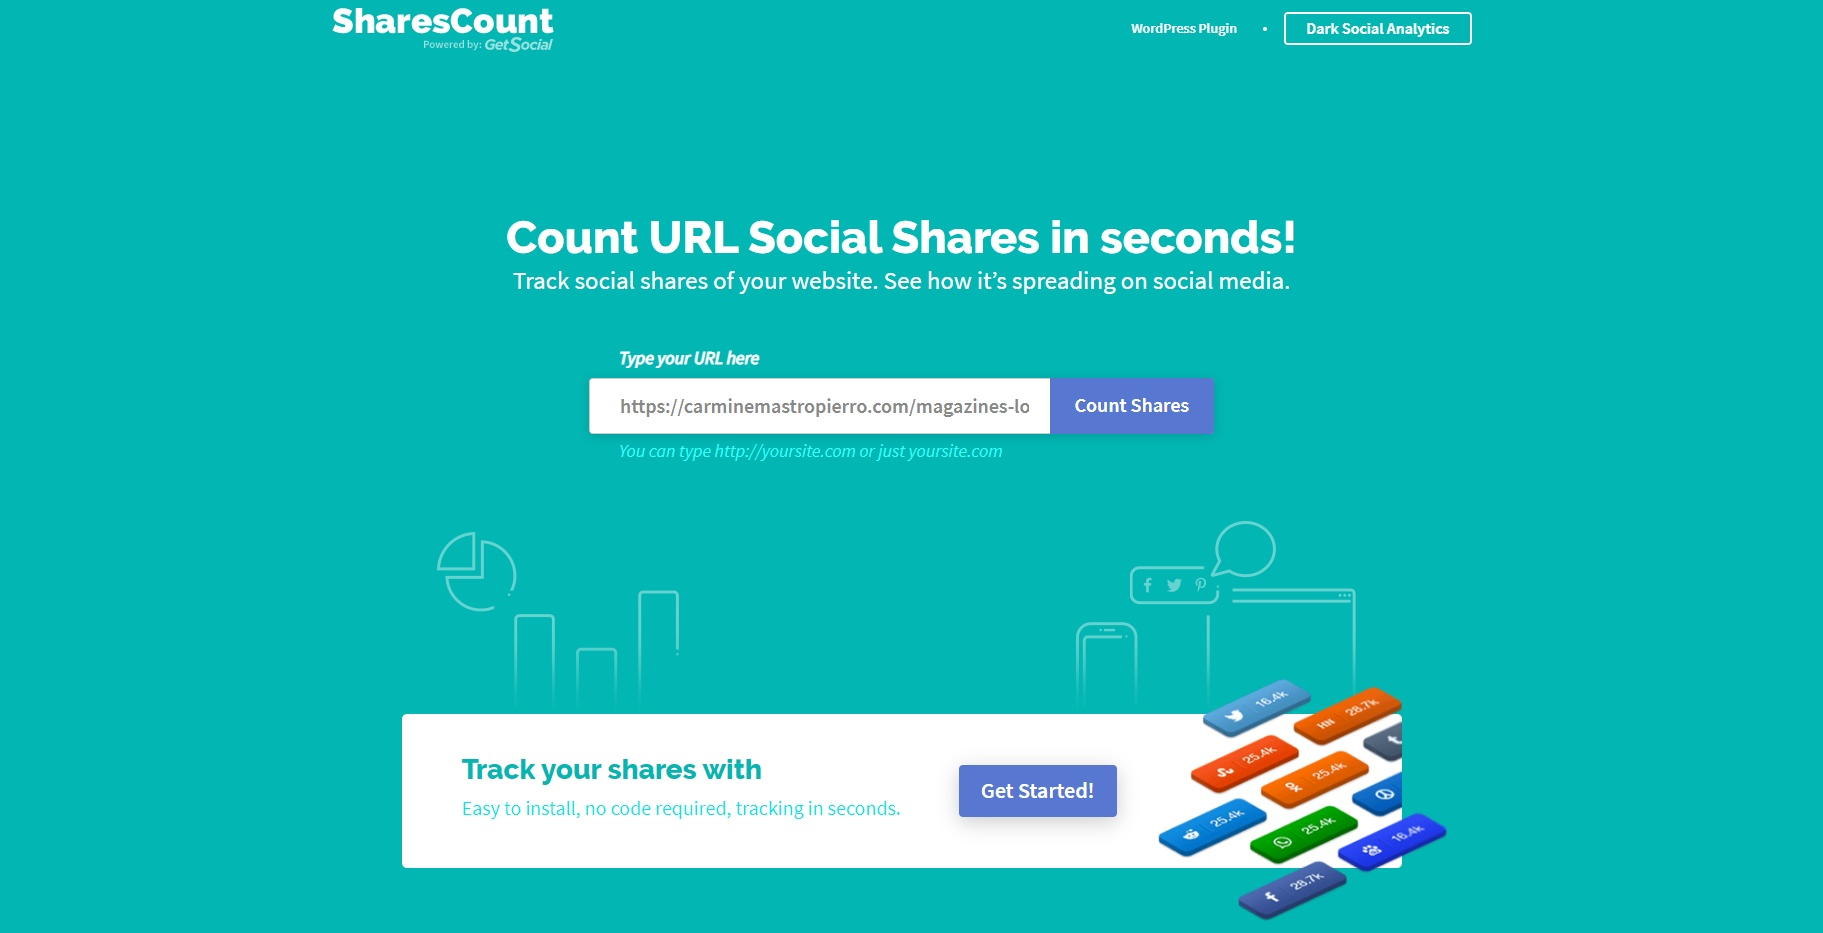 Using SharesCount